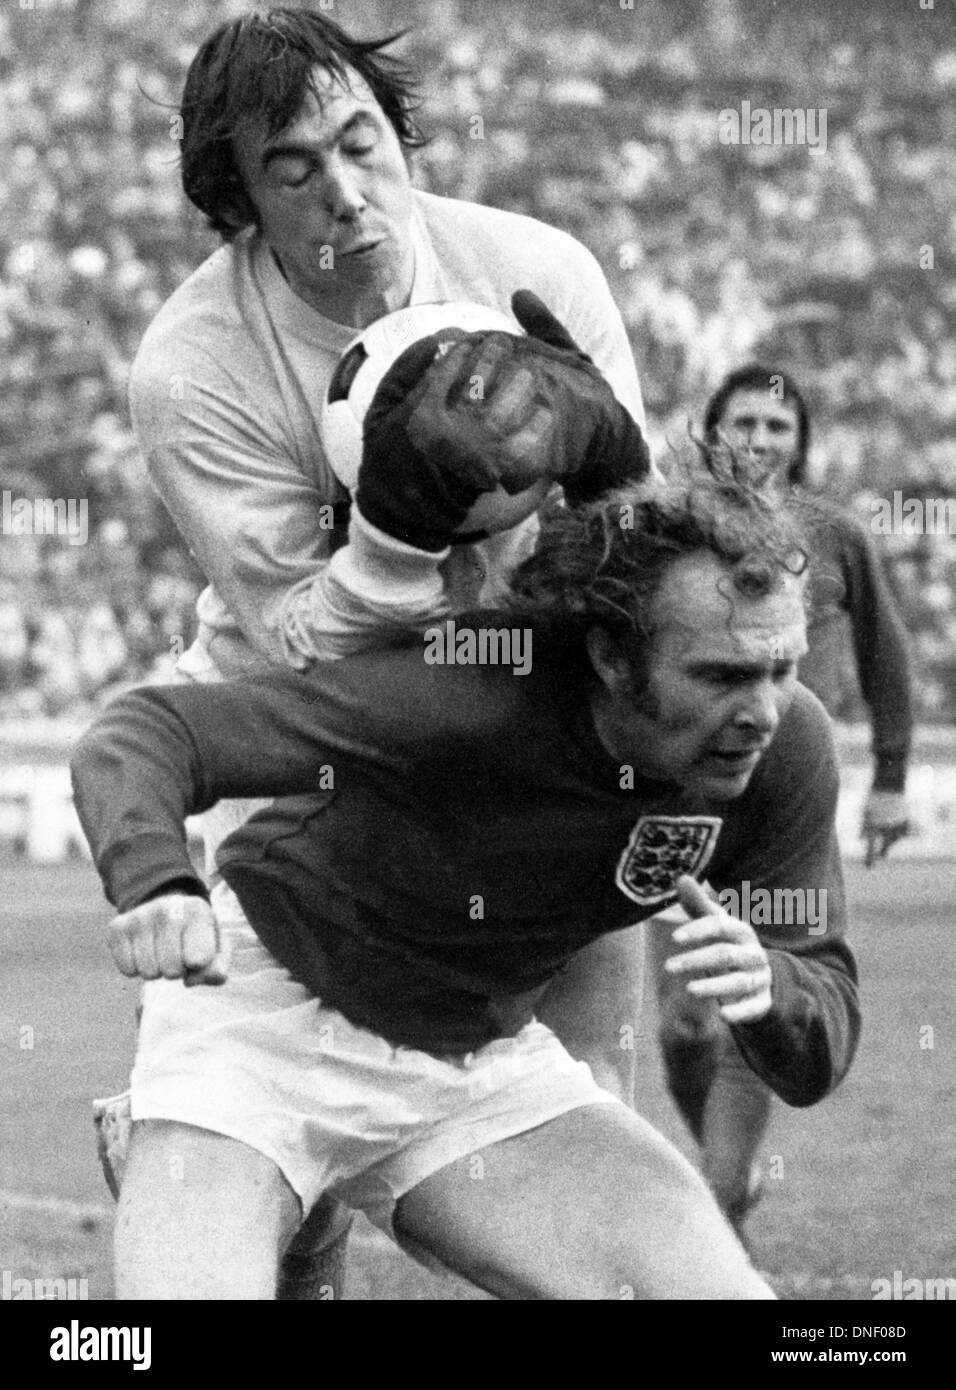 13.05.1972 Berlin, Germany. Goalie Gordon Banks collects the ball over the back of captain Bobby Moore (England) 1972 European championships quarter final - Stock Image